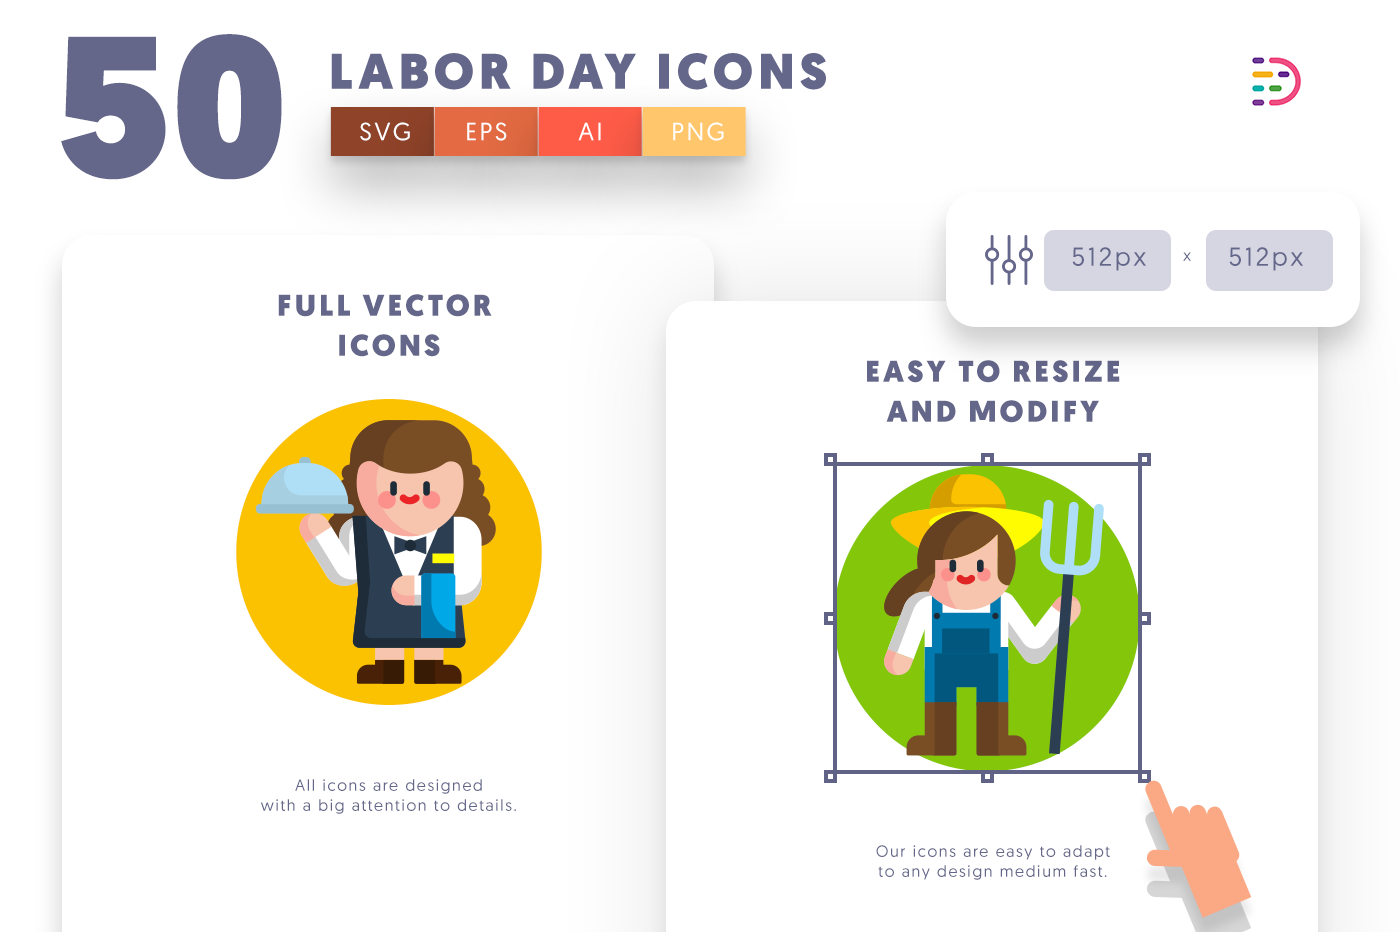 Customizable and vector 50 Labor Day Icons